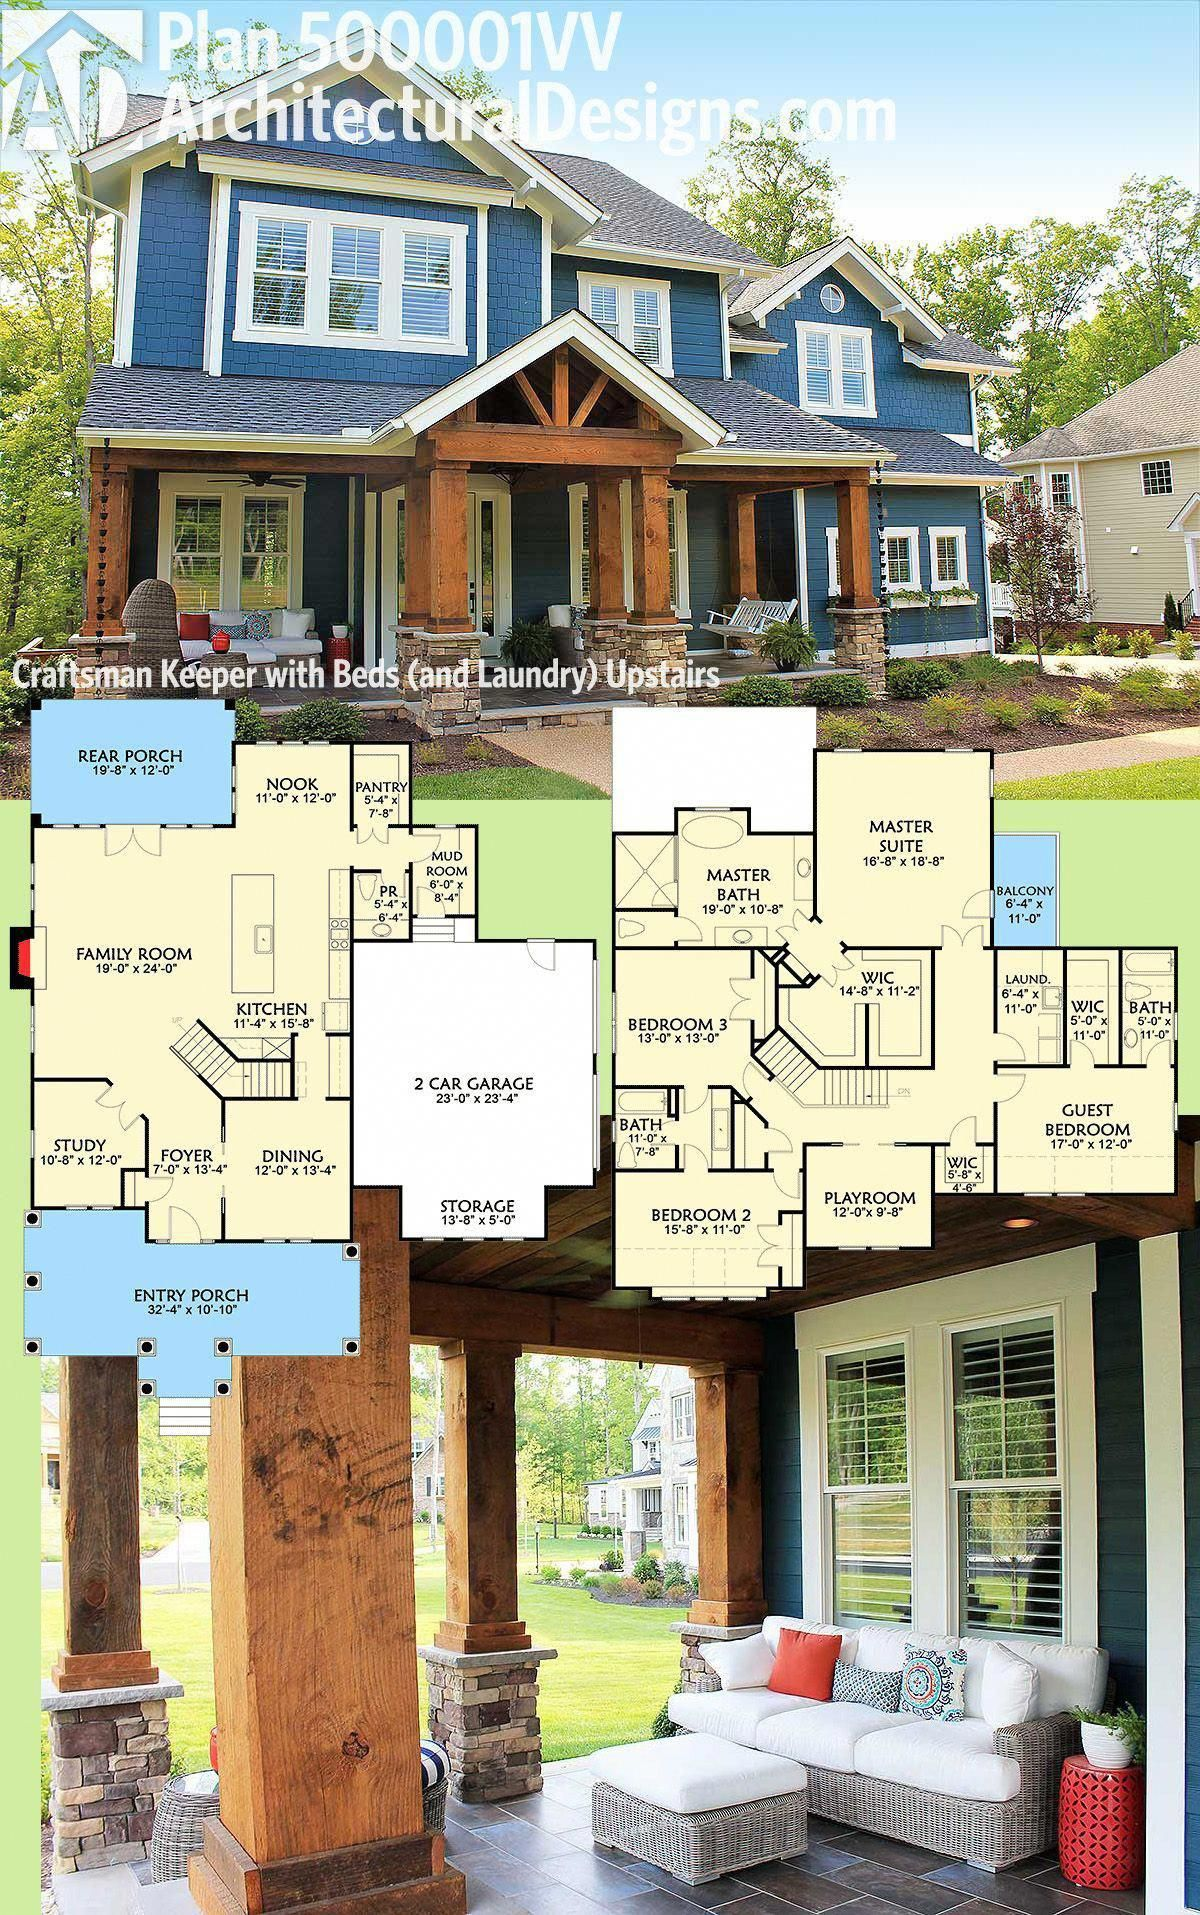 Awesome Outdoor Kitchen Designs Floor Plans Information Is Available On Our Site Take A L Architectural Design House Plans Craftsman House Dream House Plans